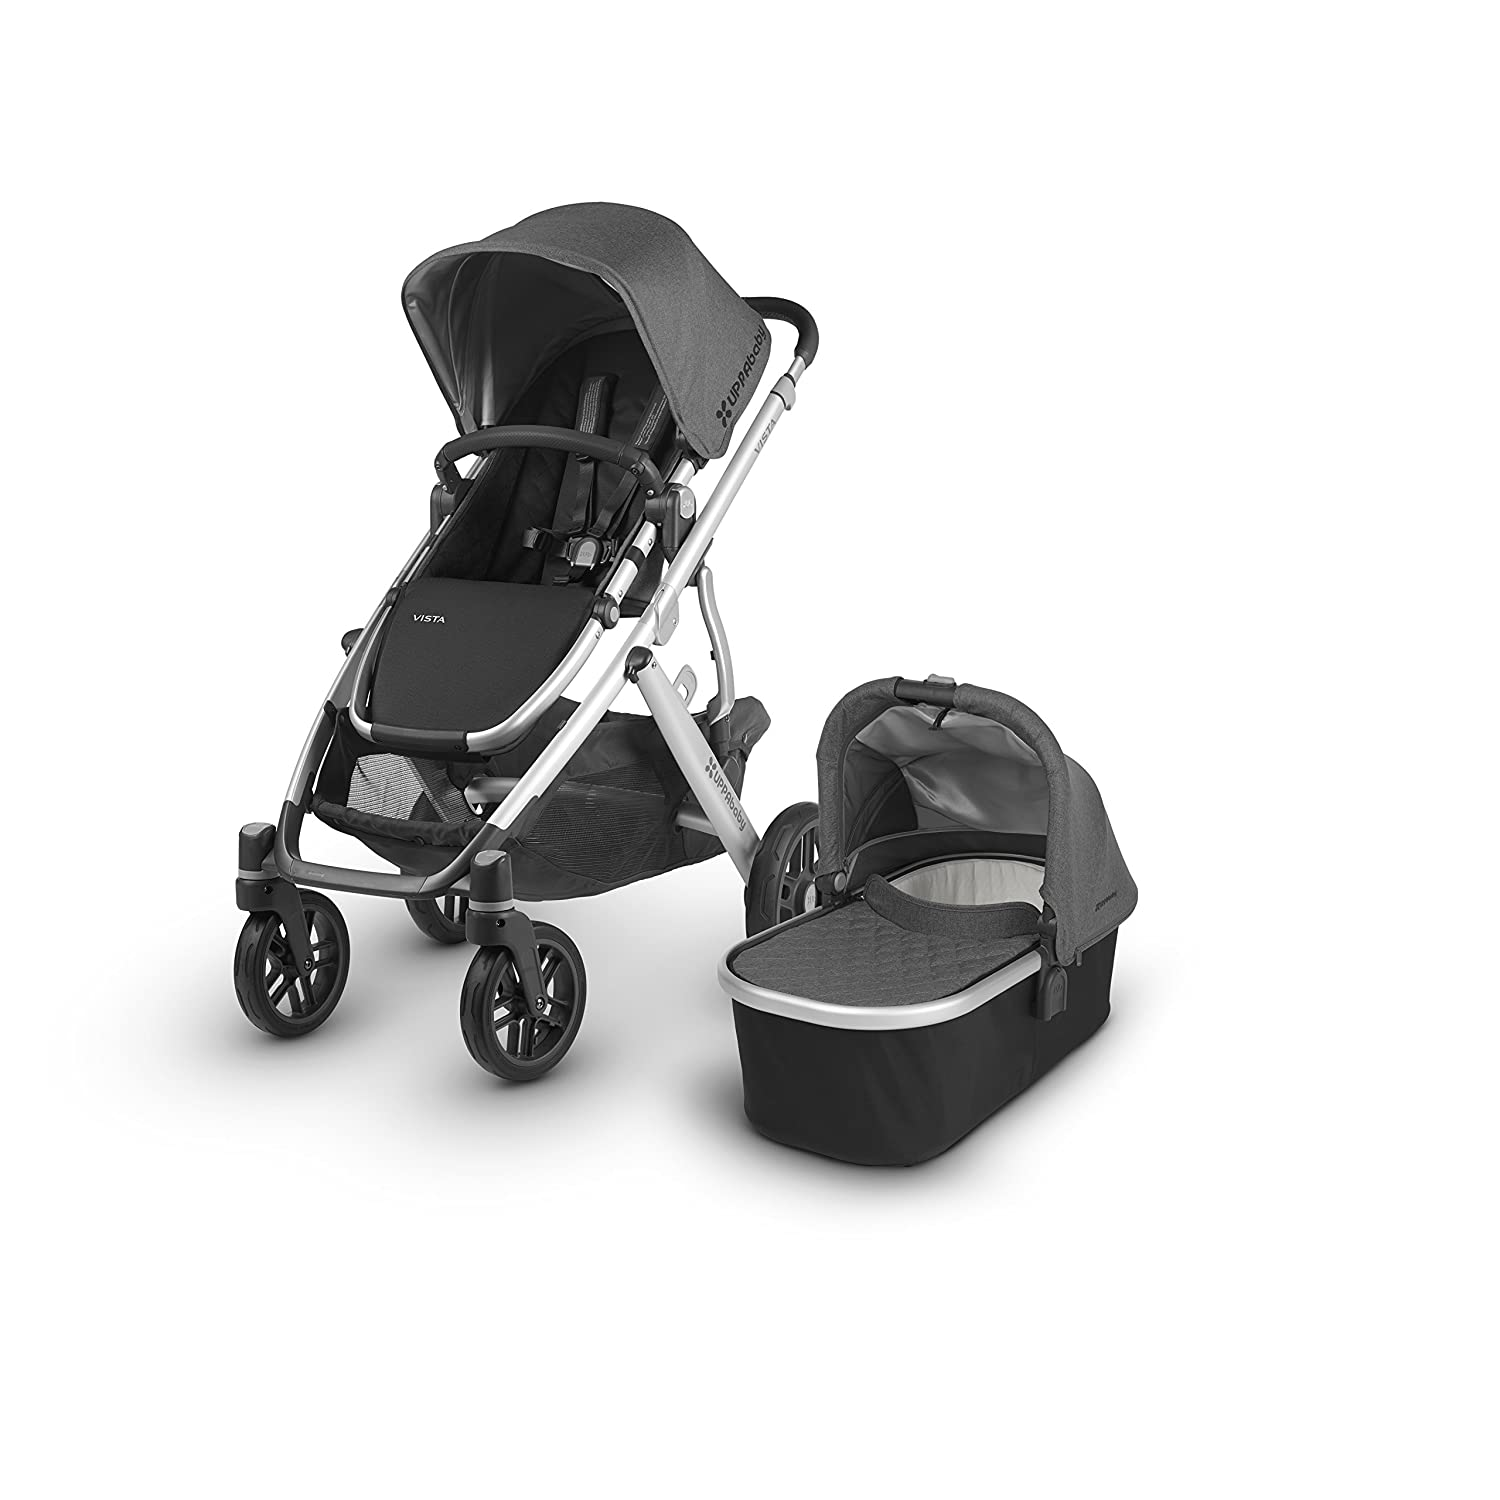 2018 UPPAbaby Vista Stroller -Jordan Charcoal Melange Silver Black Leather